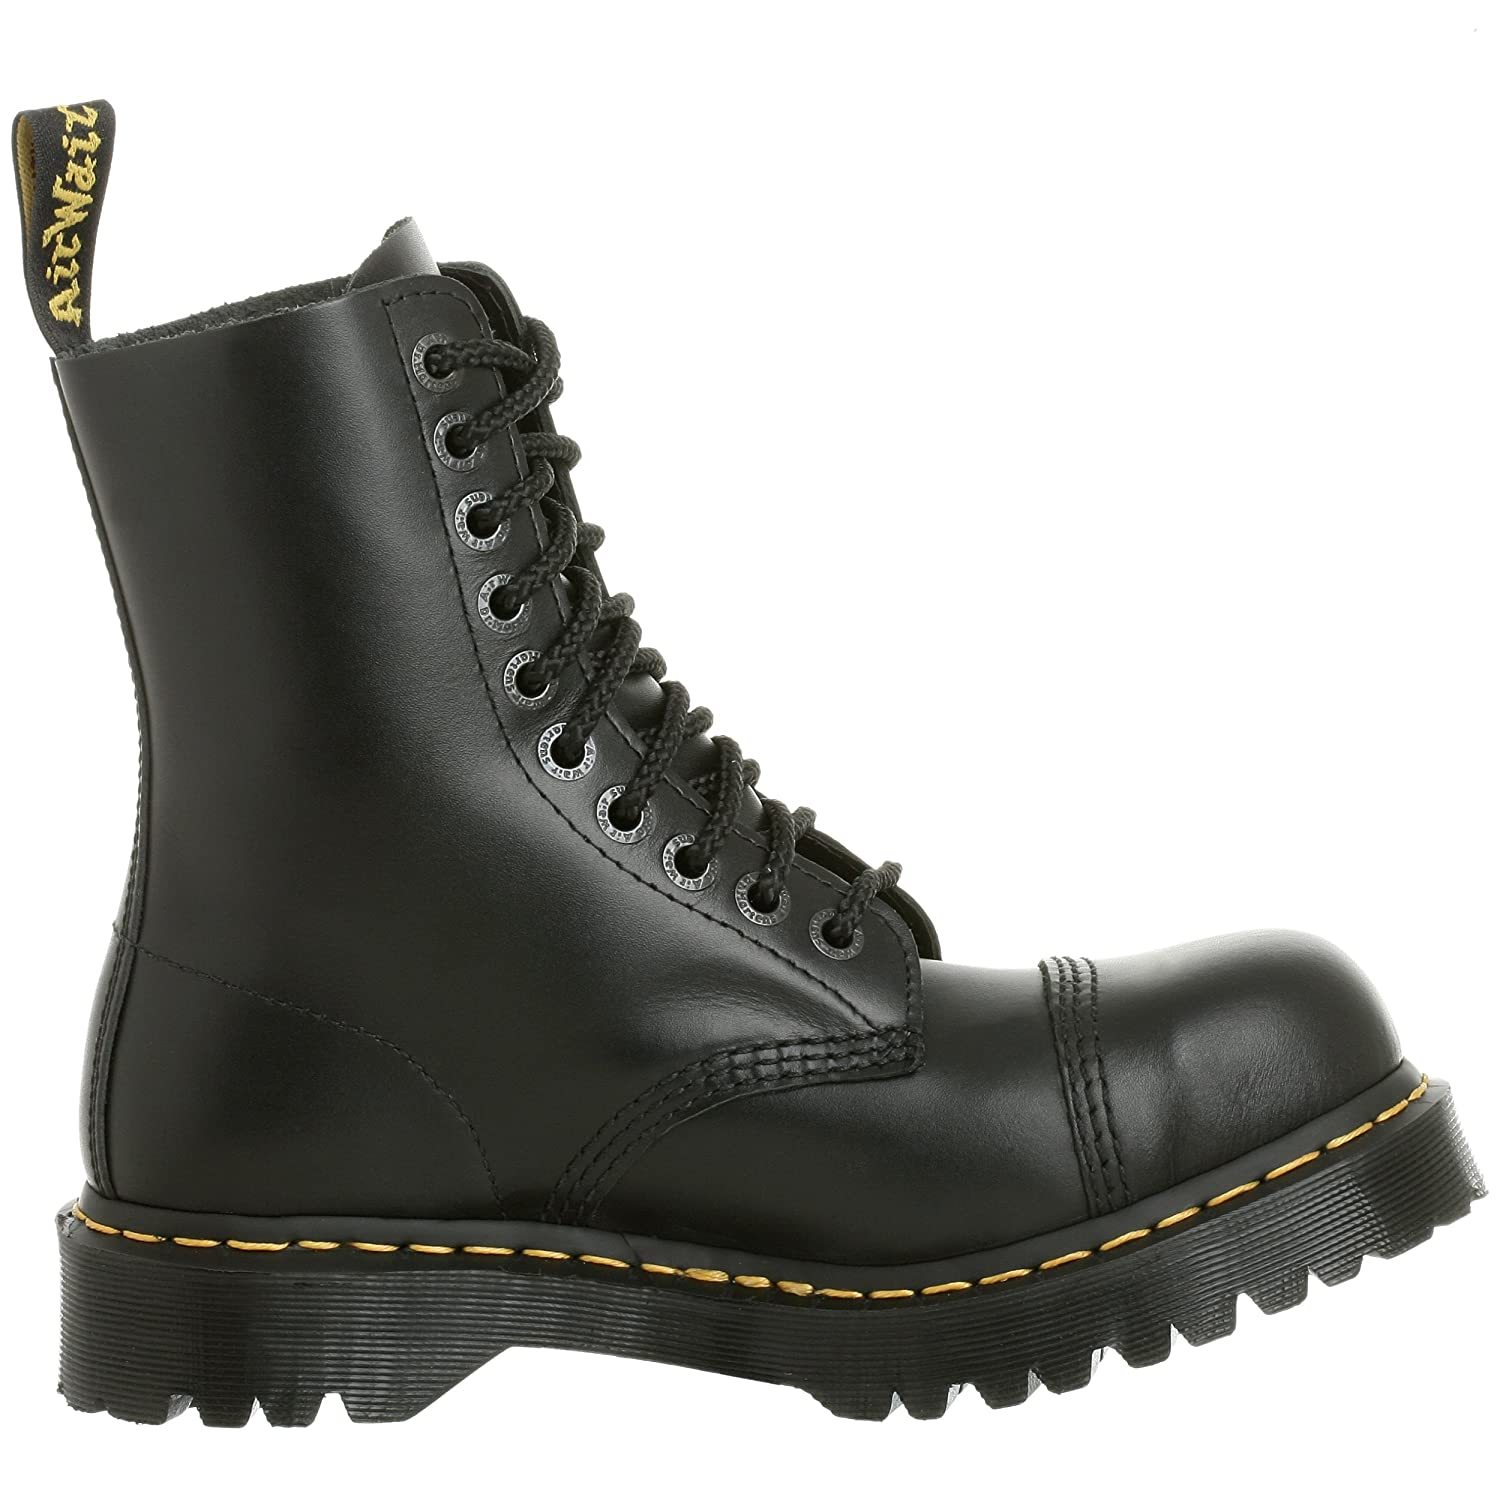 Dr. Martens Men's/Women's 8761 Boot B0009BV4M8 5 UK/M 6- W 7 M US|Black Fine Haircell